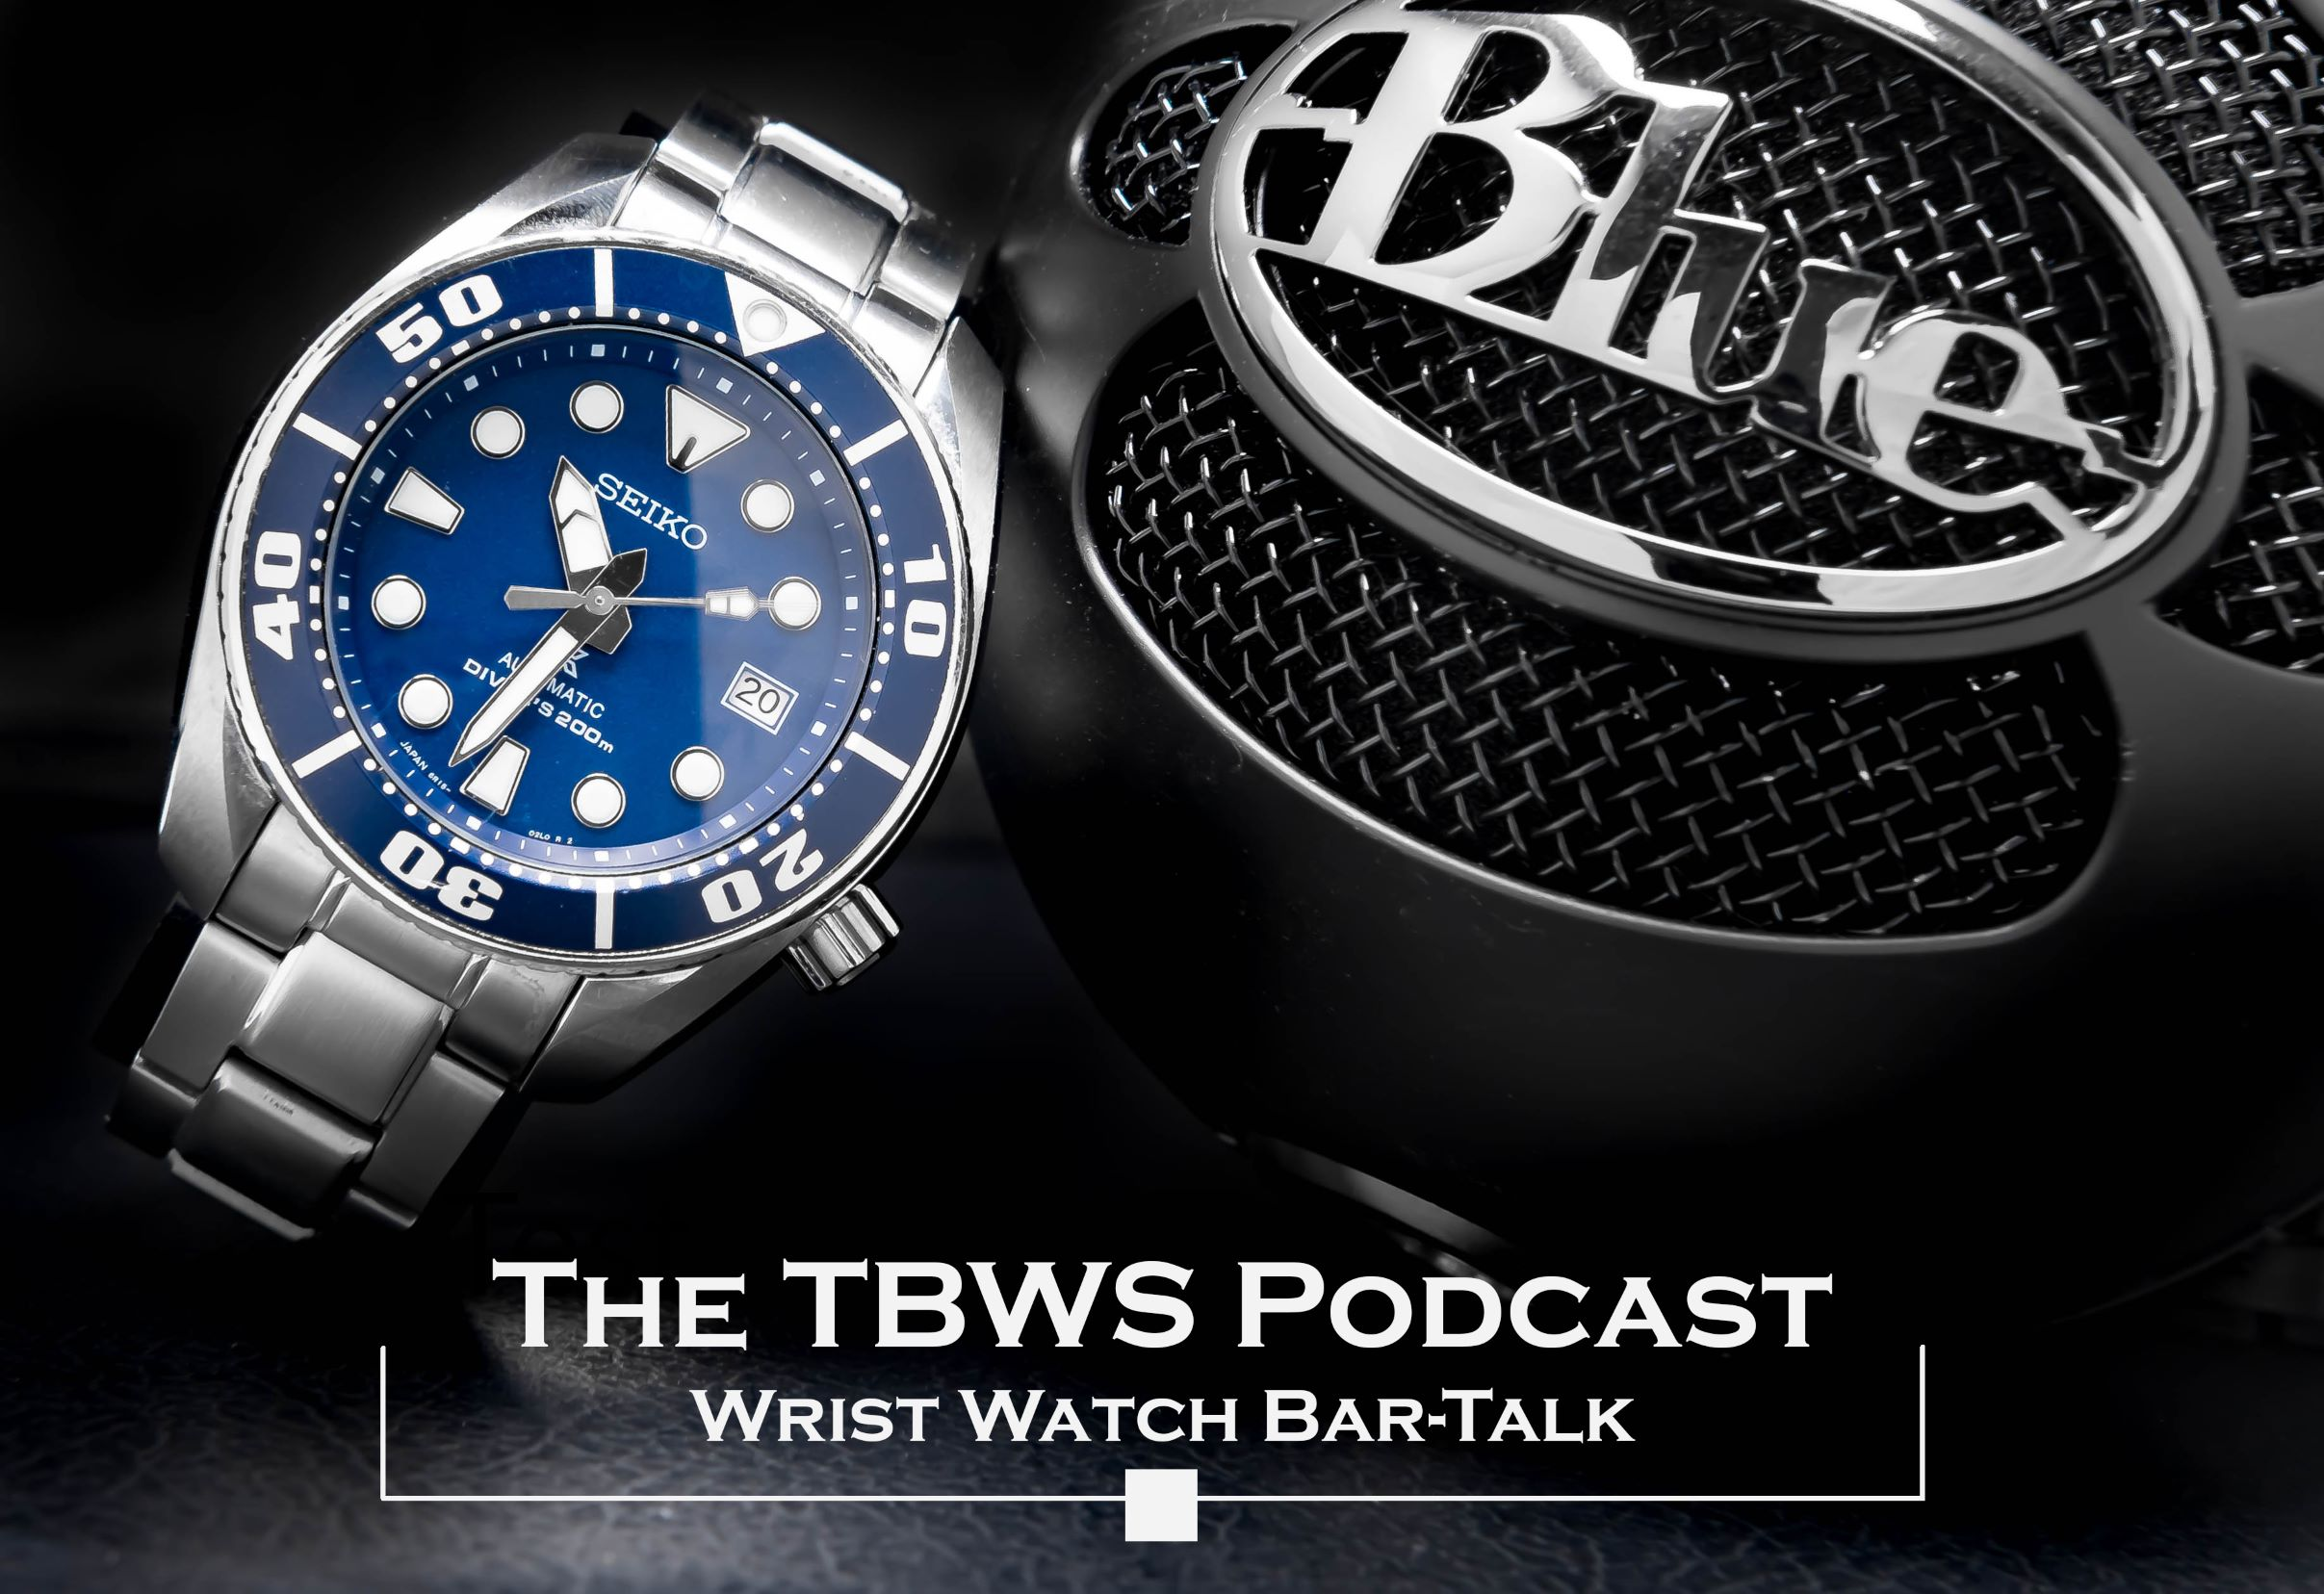 Wrist Watch Podcast